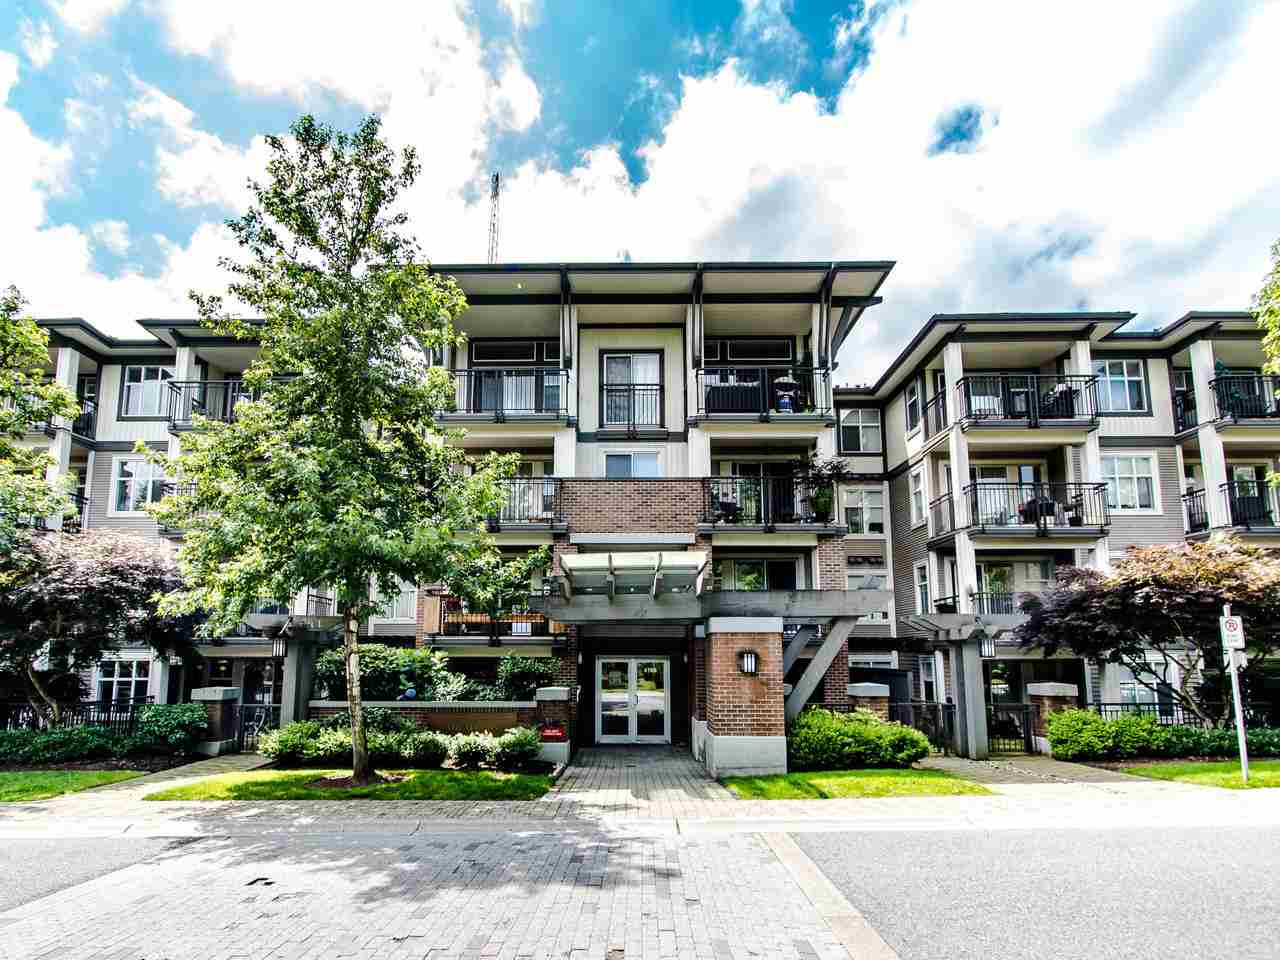 113 4768 BRENTWOOD DRIVE - Brentwood Park Apartment/Condo for sale, 2 Bedrooms (R2475504) - #1